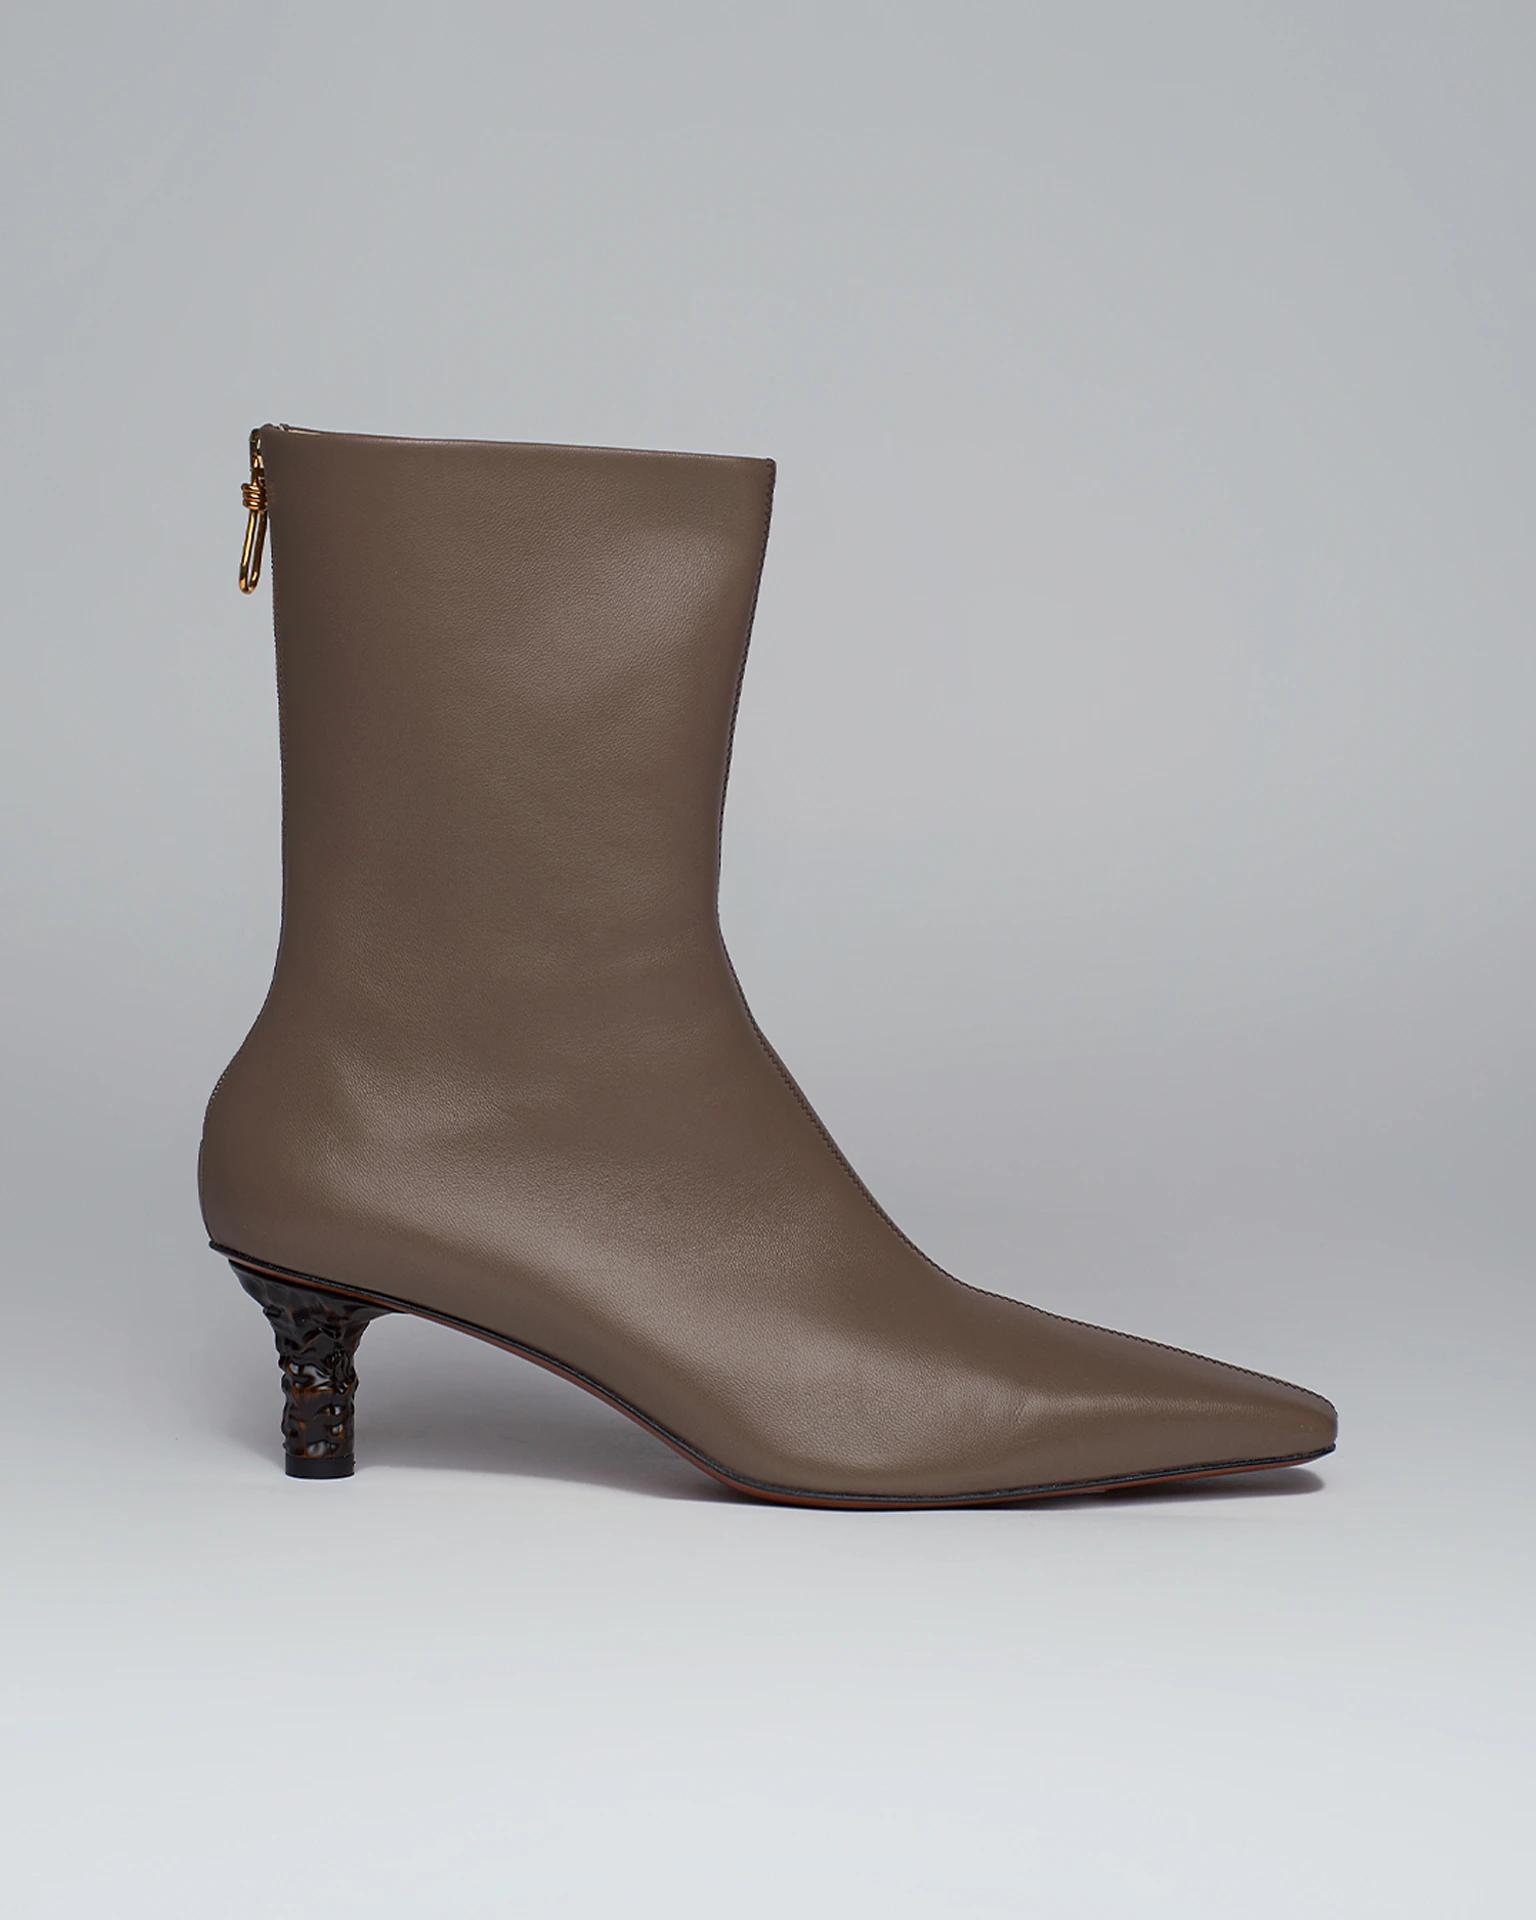 TALLI - Sculpted-heel leather boots - Gray